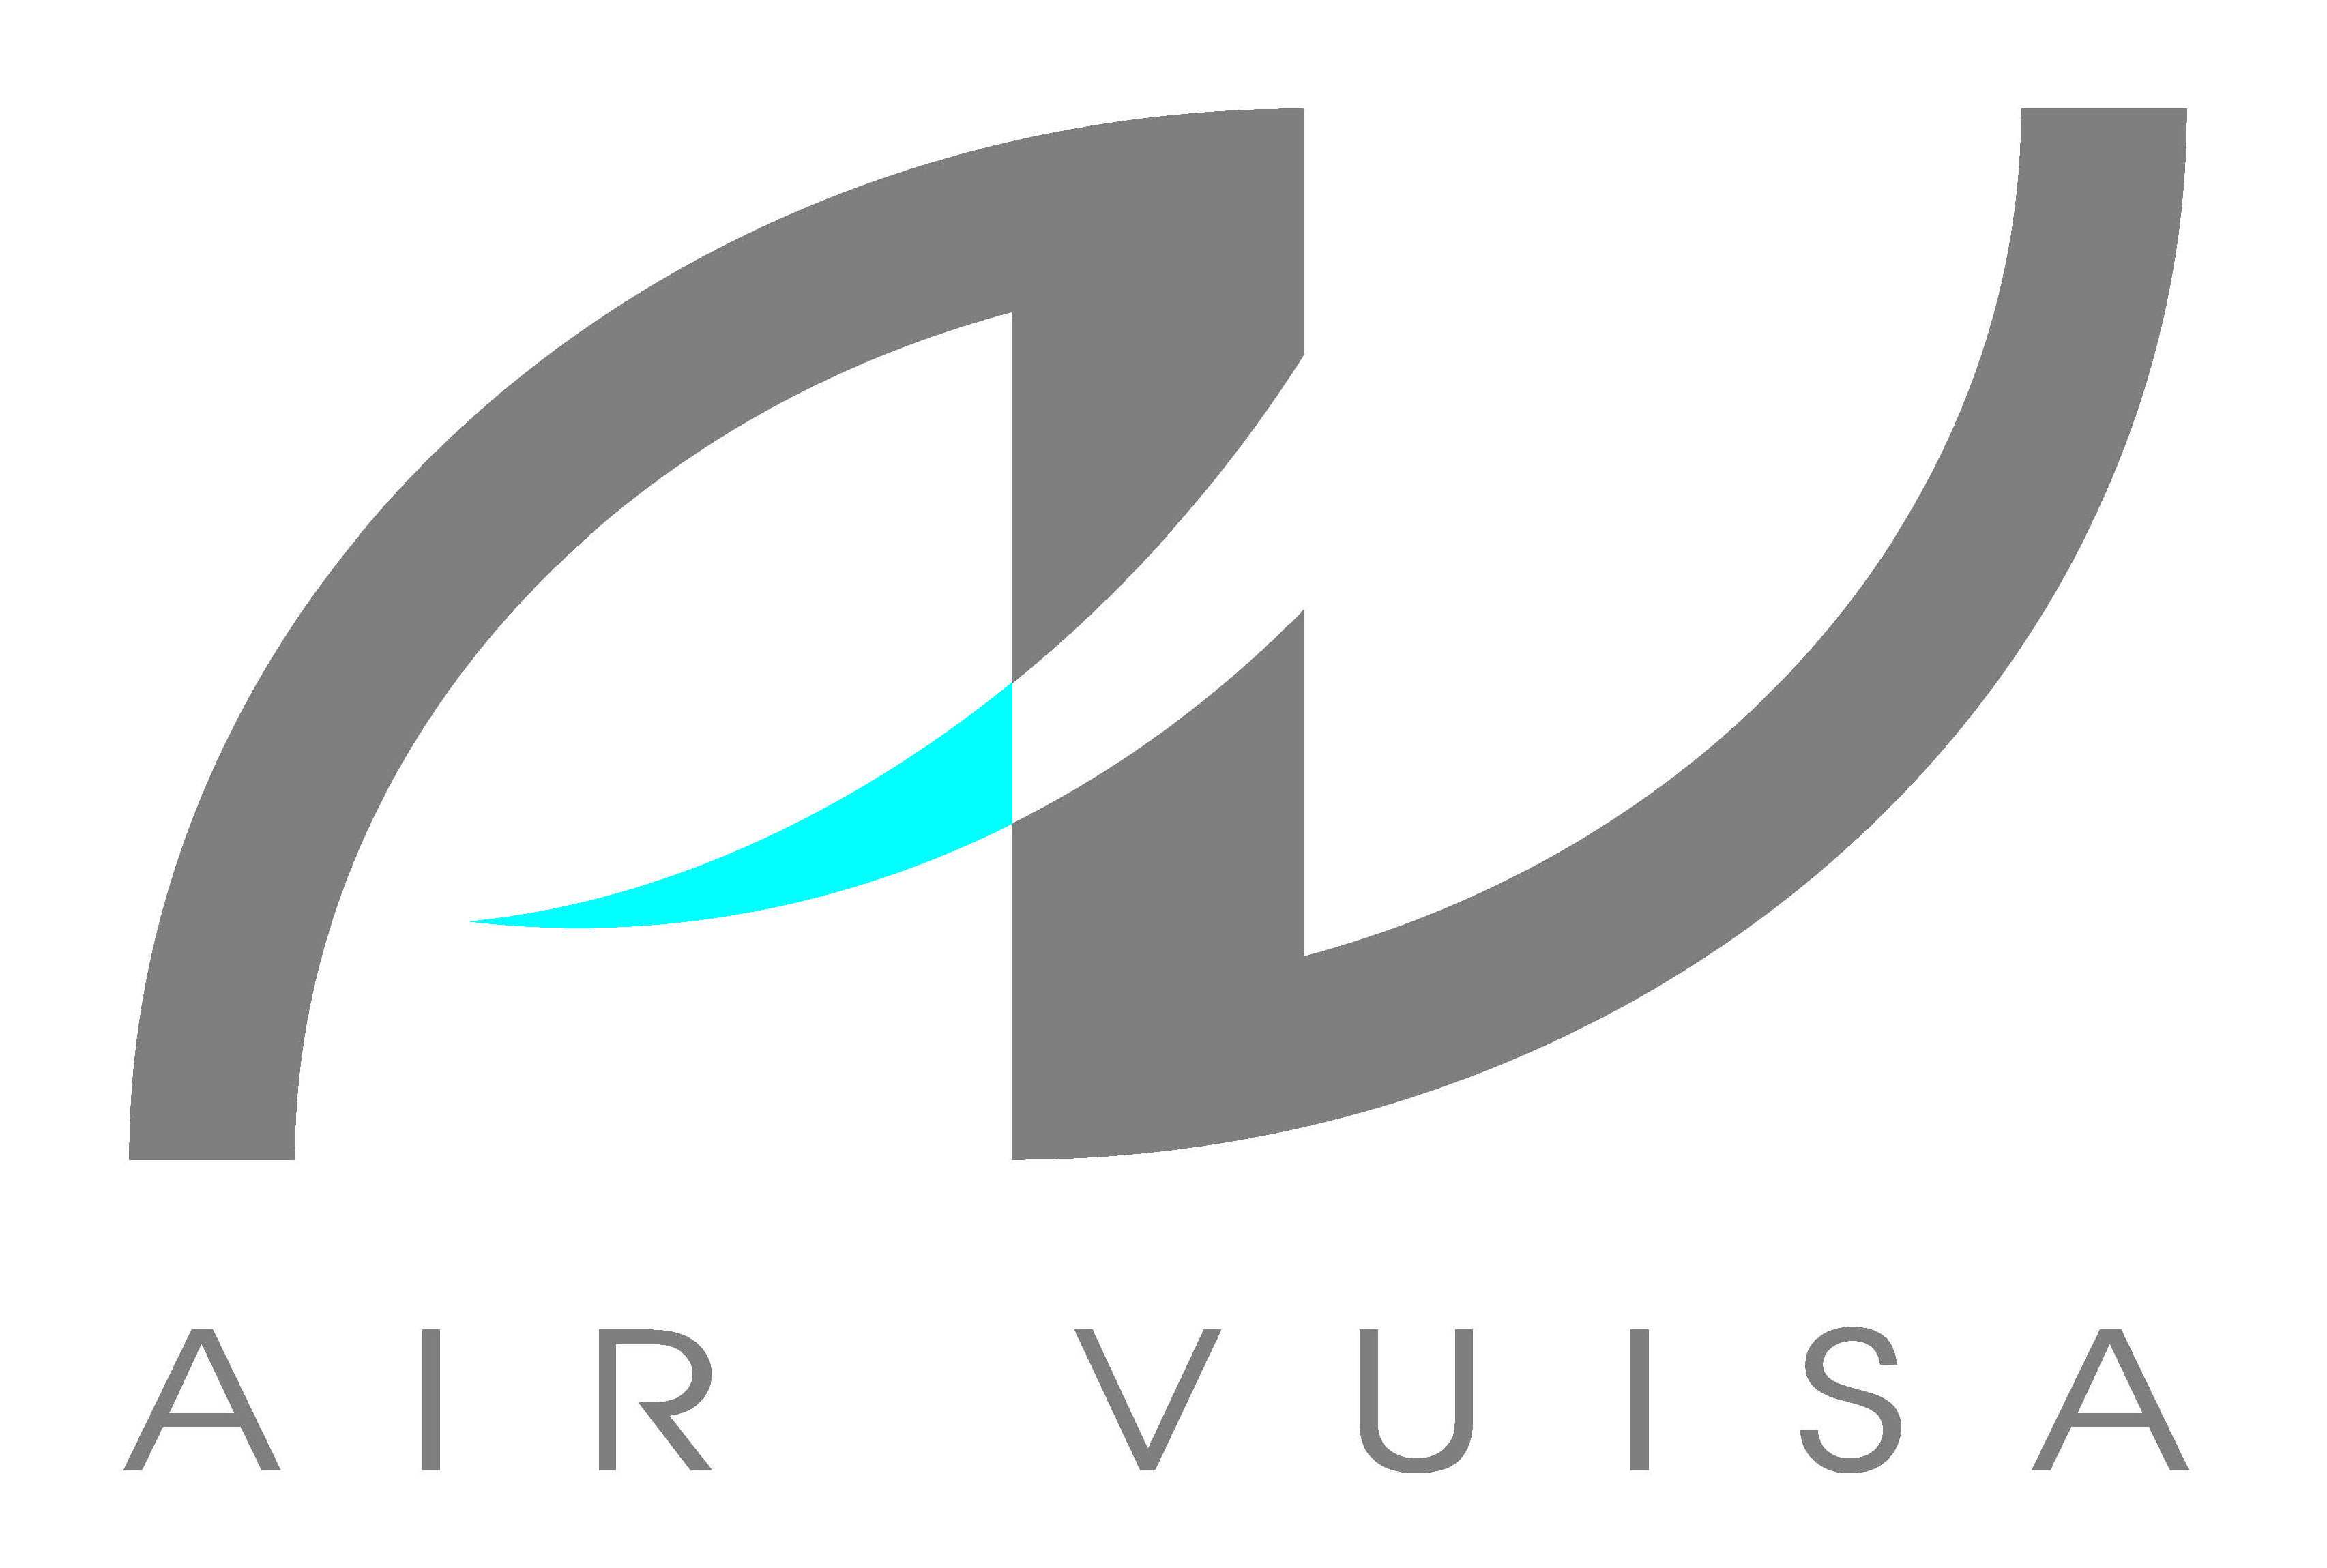 Air Vuisia1